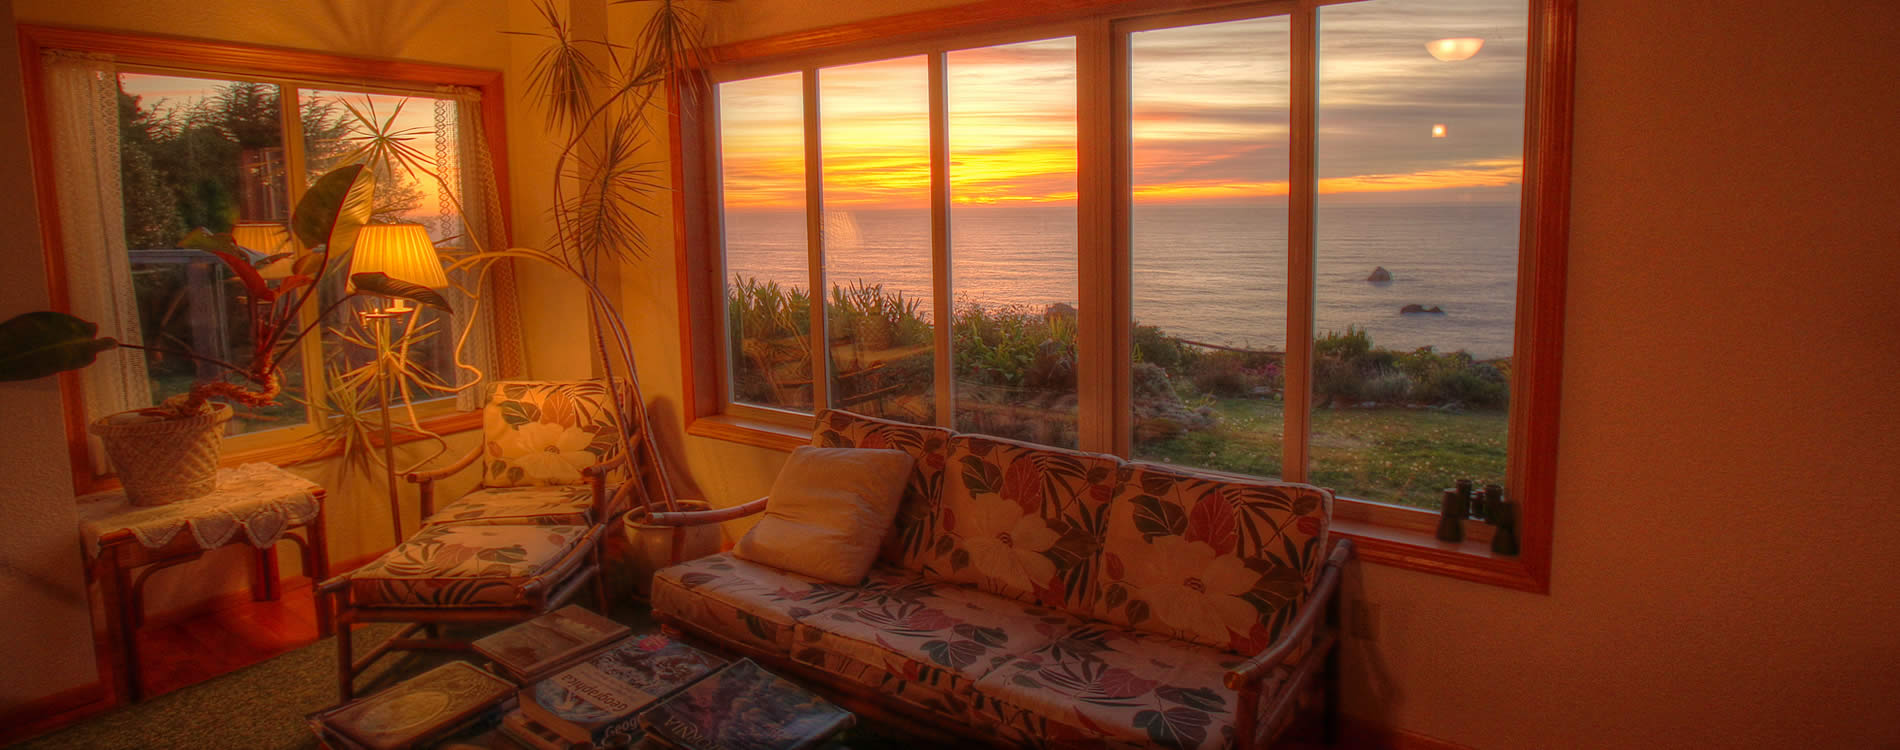 northern california coast bed and breakfast - oceanview lodging in trinidad ca